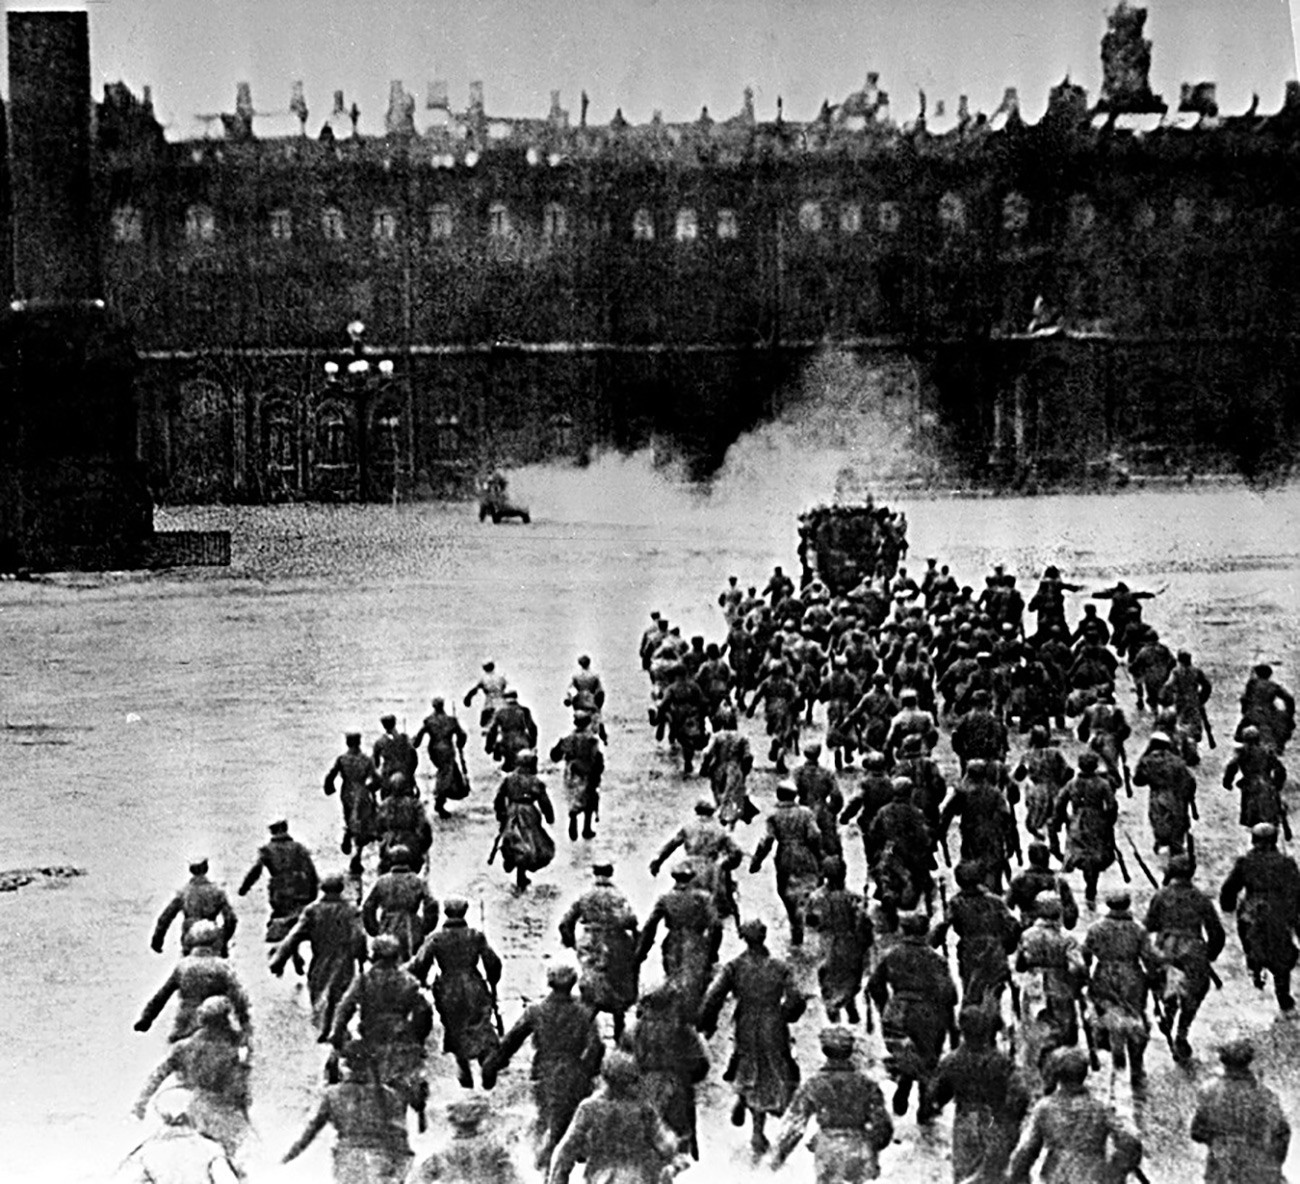 Storming Winter Palace in Petrograd, 1917